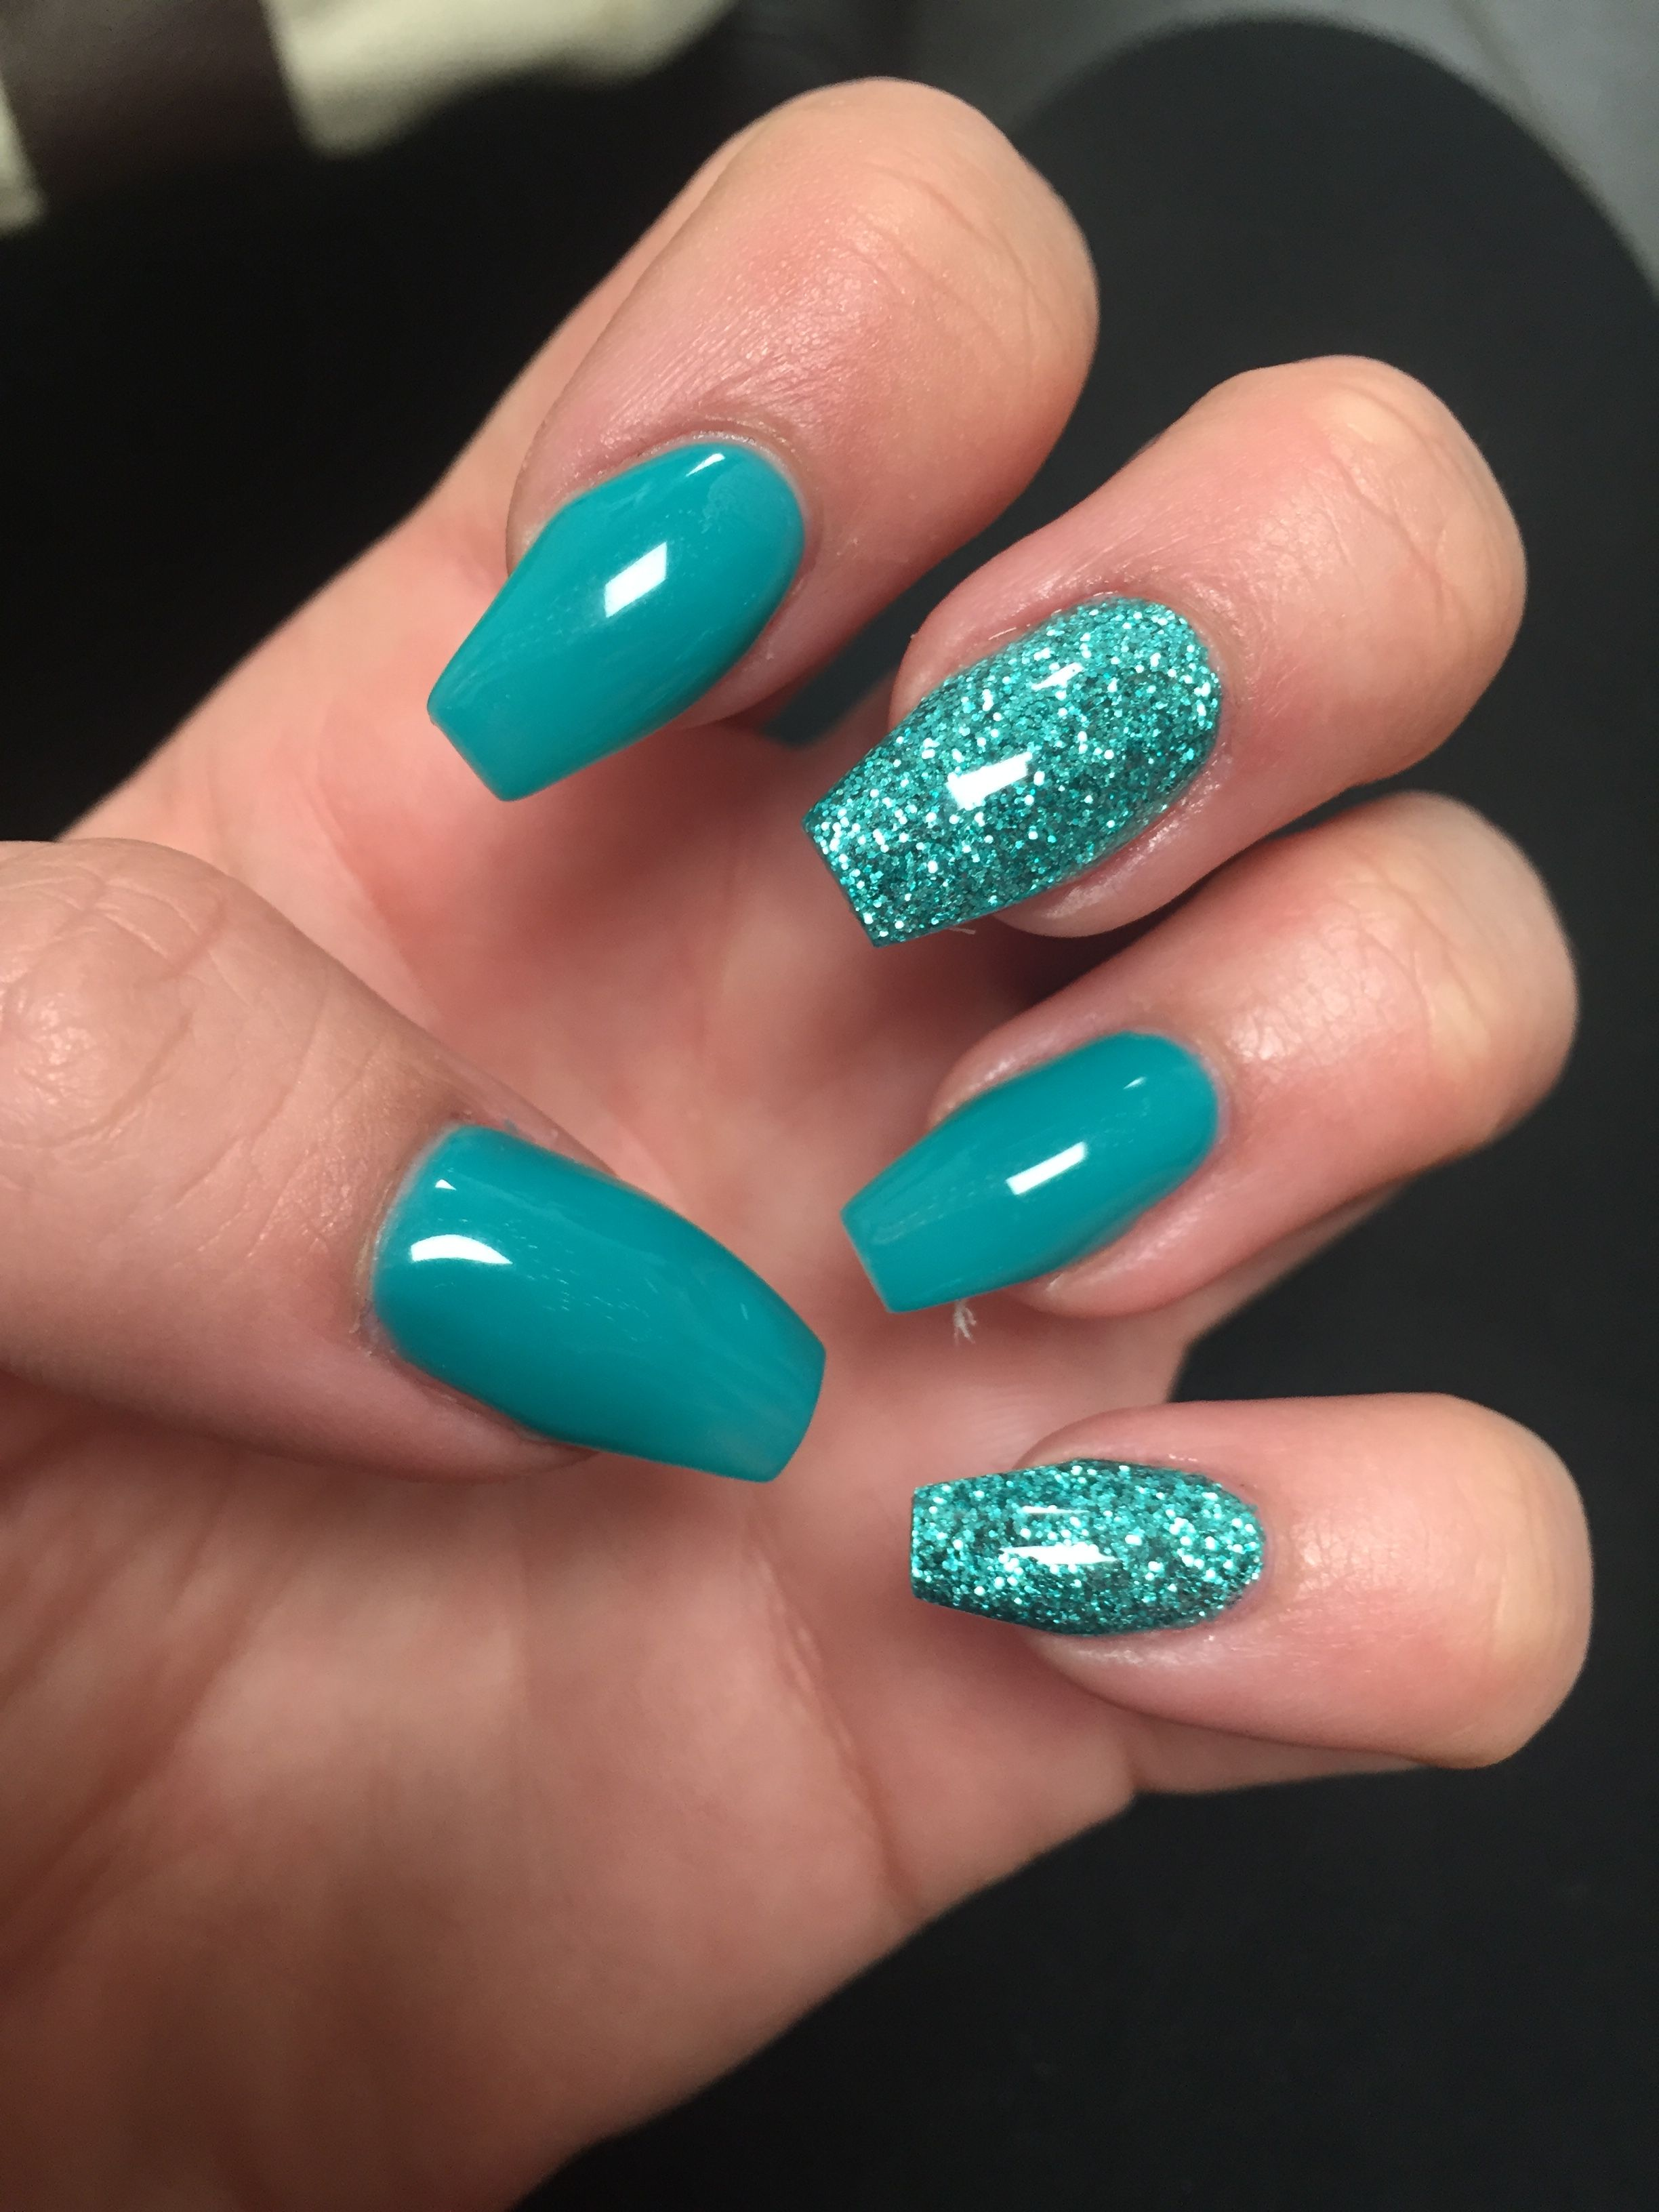 Pin By Marell De Groot On Nails Turquoise Acrylic Nails Teal Acrylic Nails Turquoise Nails